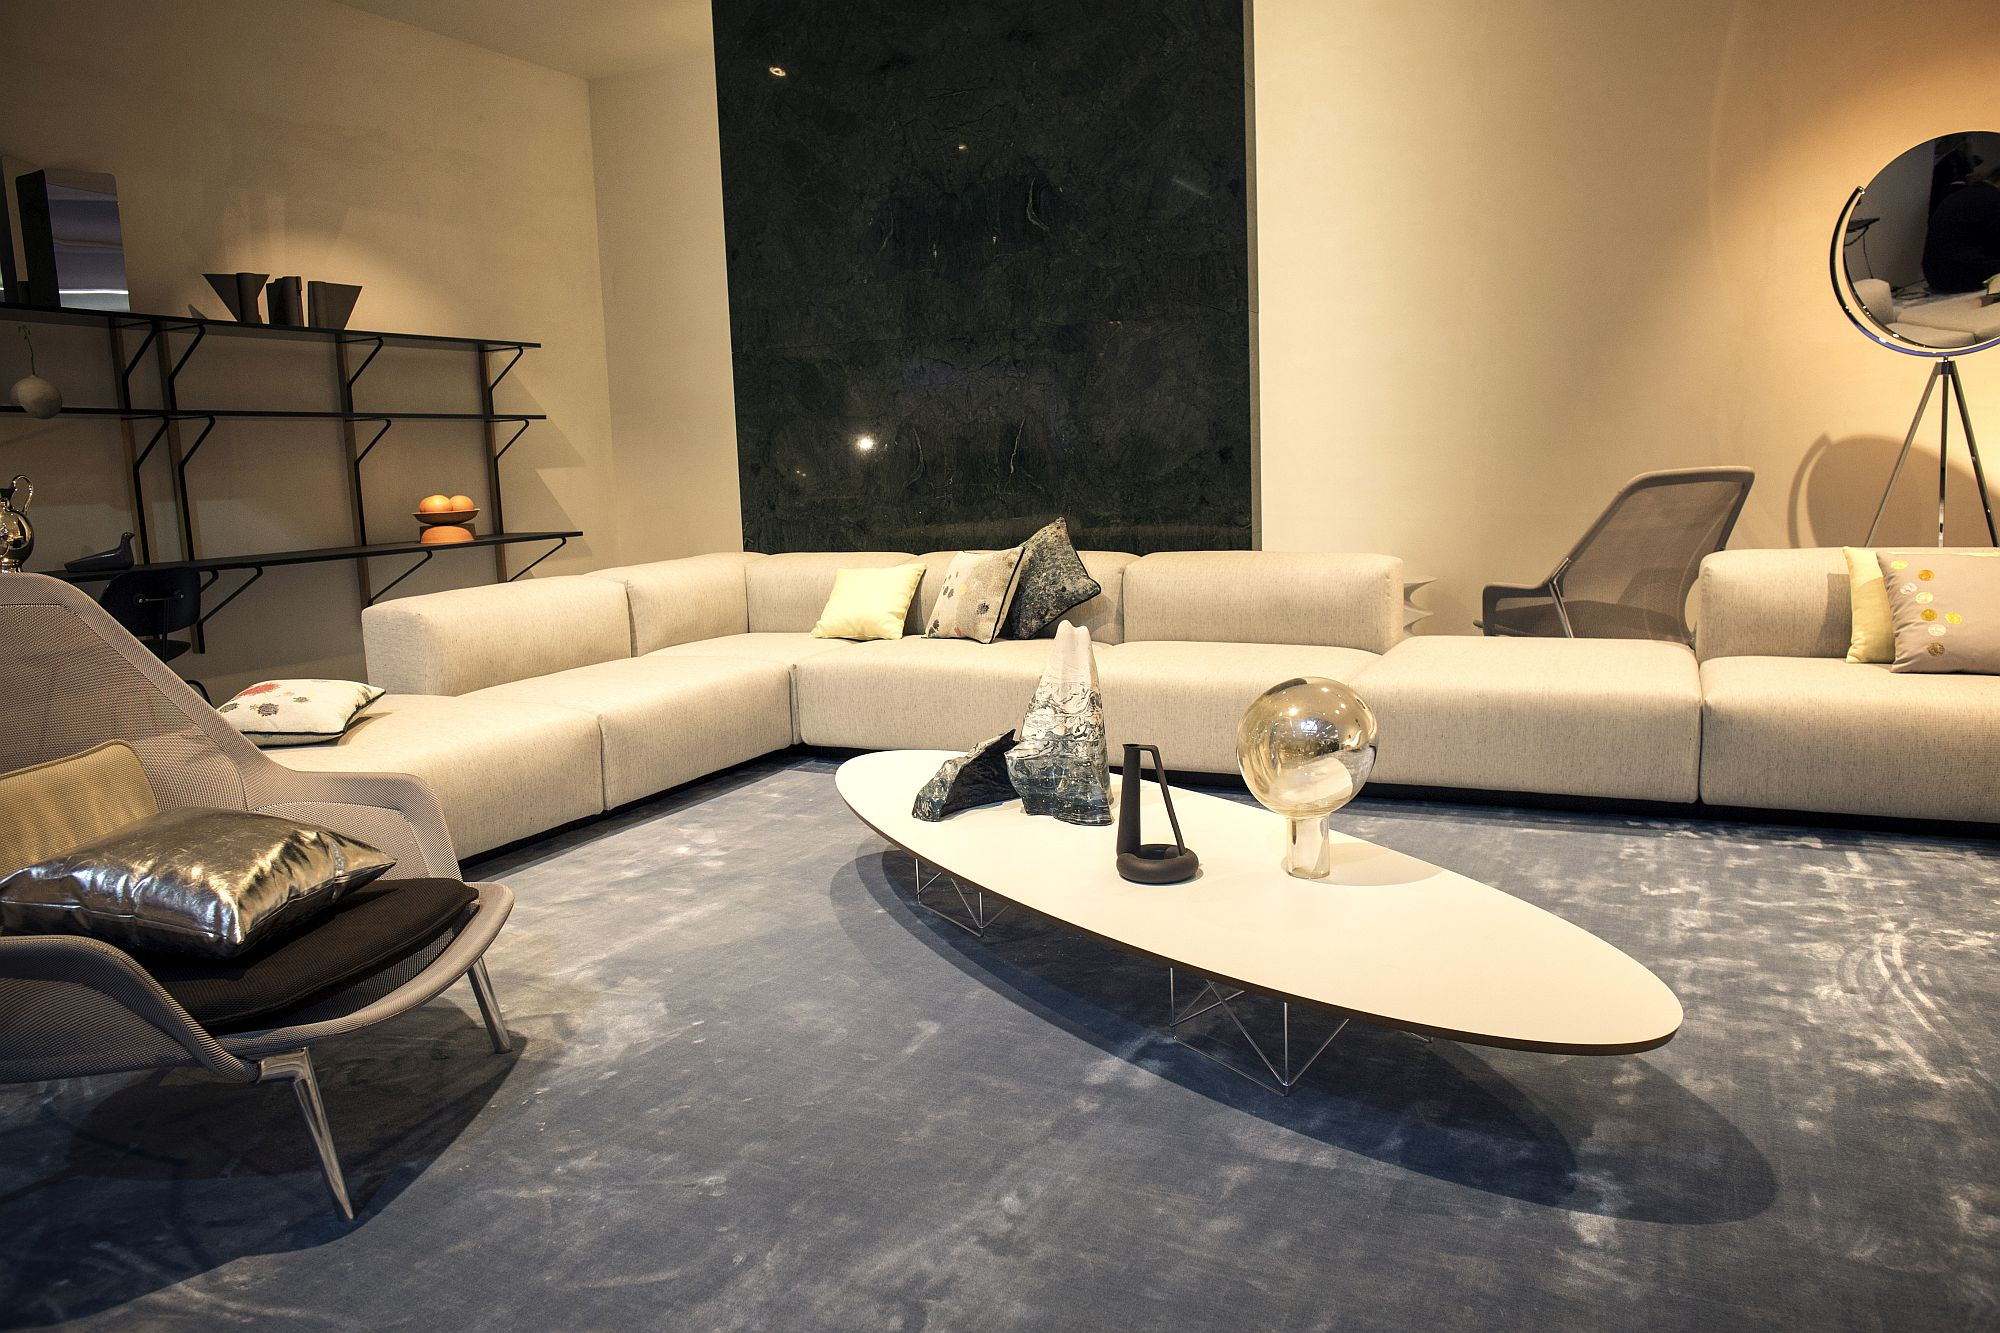 Eliptical-coffee-table-in-white-is-perfect-for-the-living-room-with-low-ceiling